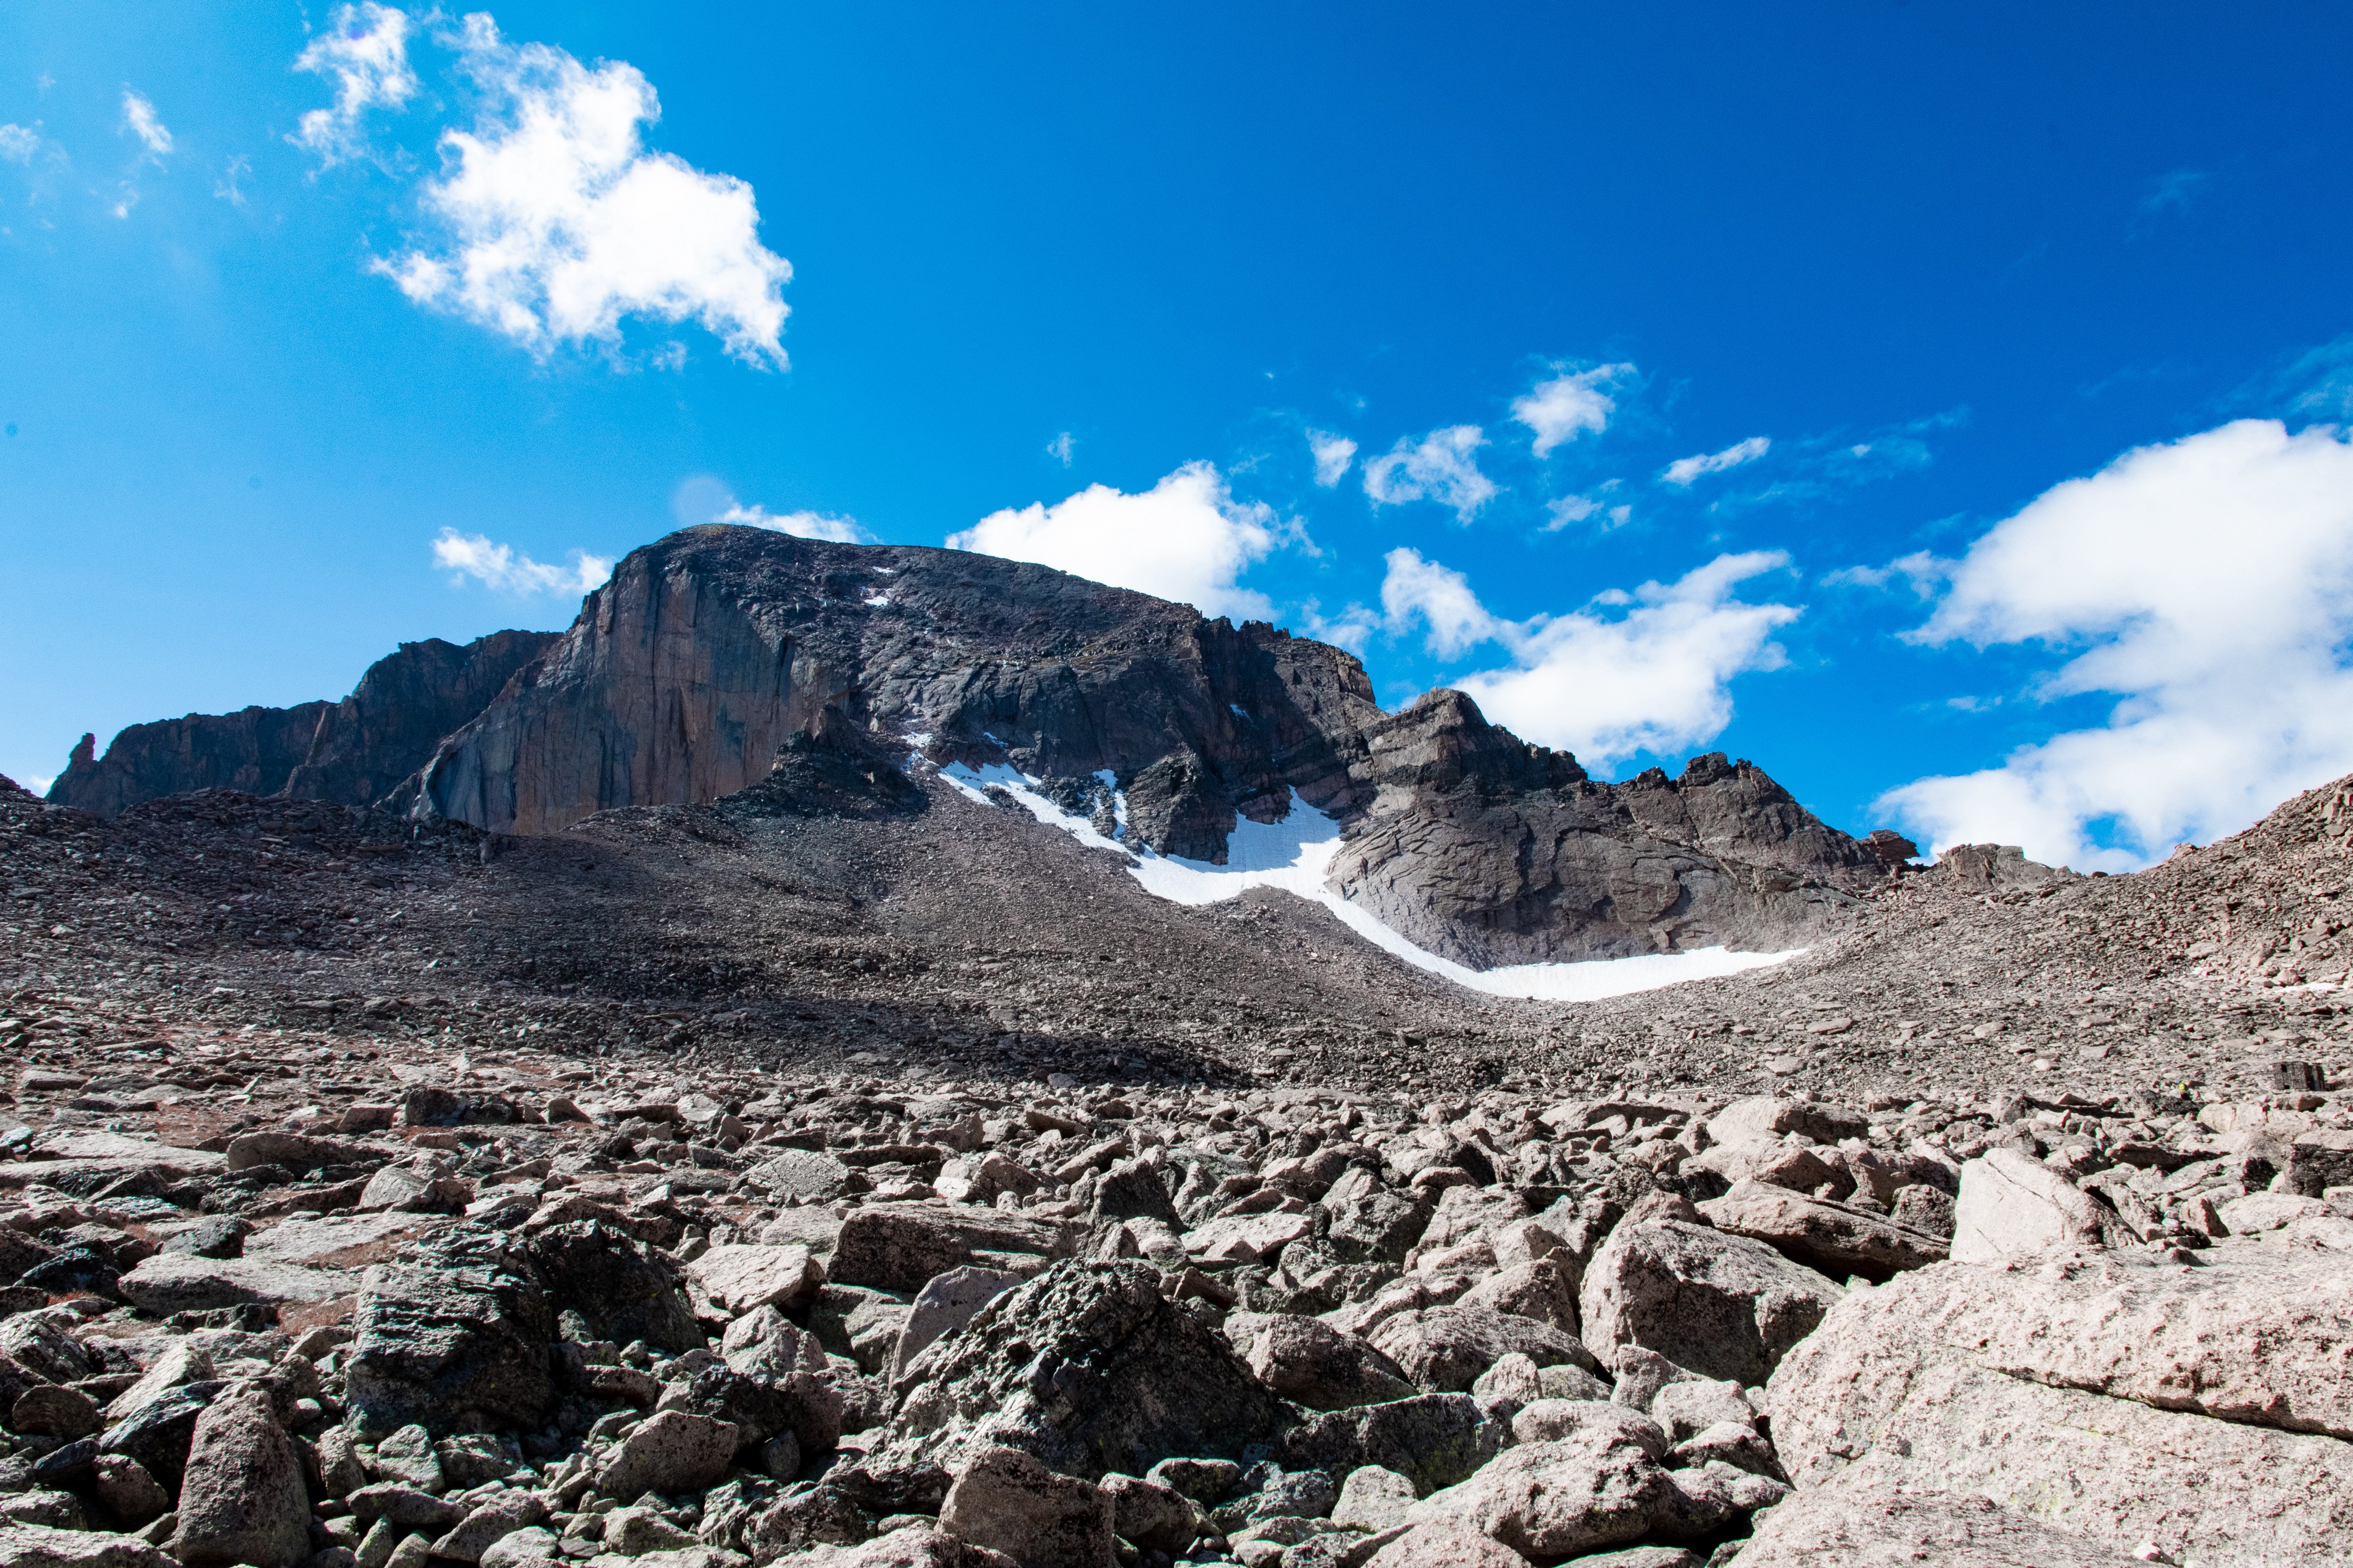 Retreating snow pack on Longs Peak, Rocky Mountain National Park, Colorado. Photo by Christian Yonkers